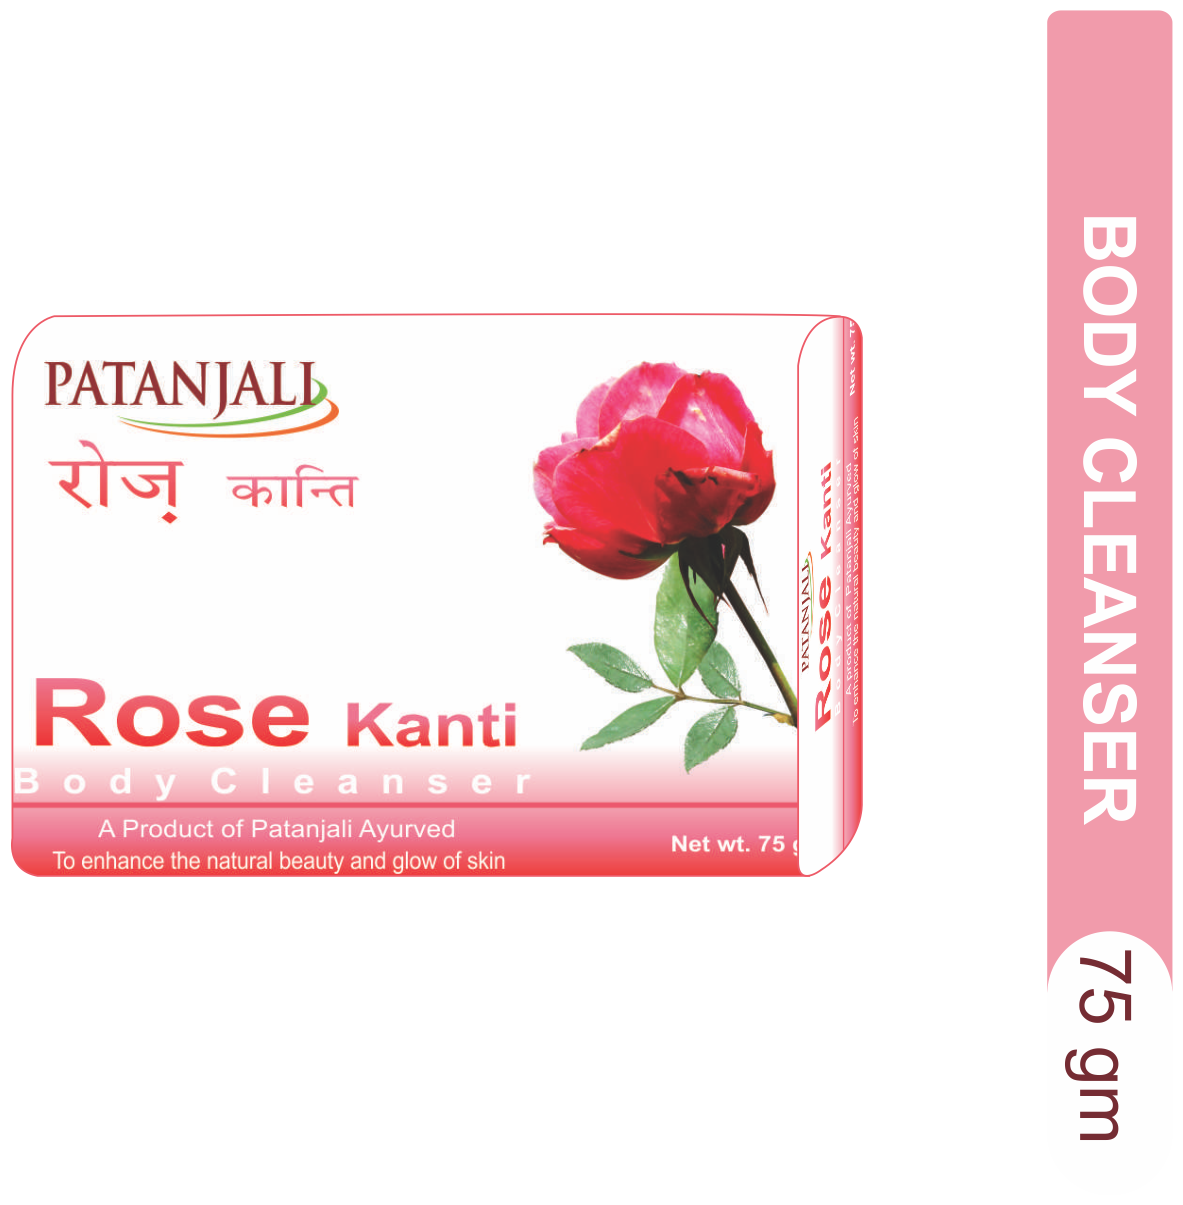 https://assetscdn1.paytm.com/images/catalog/product/F/FA/FASPATANJALI-ROPATA72462566DD1D50/1561515202443_4.png